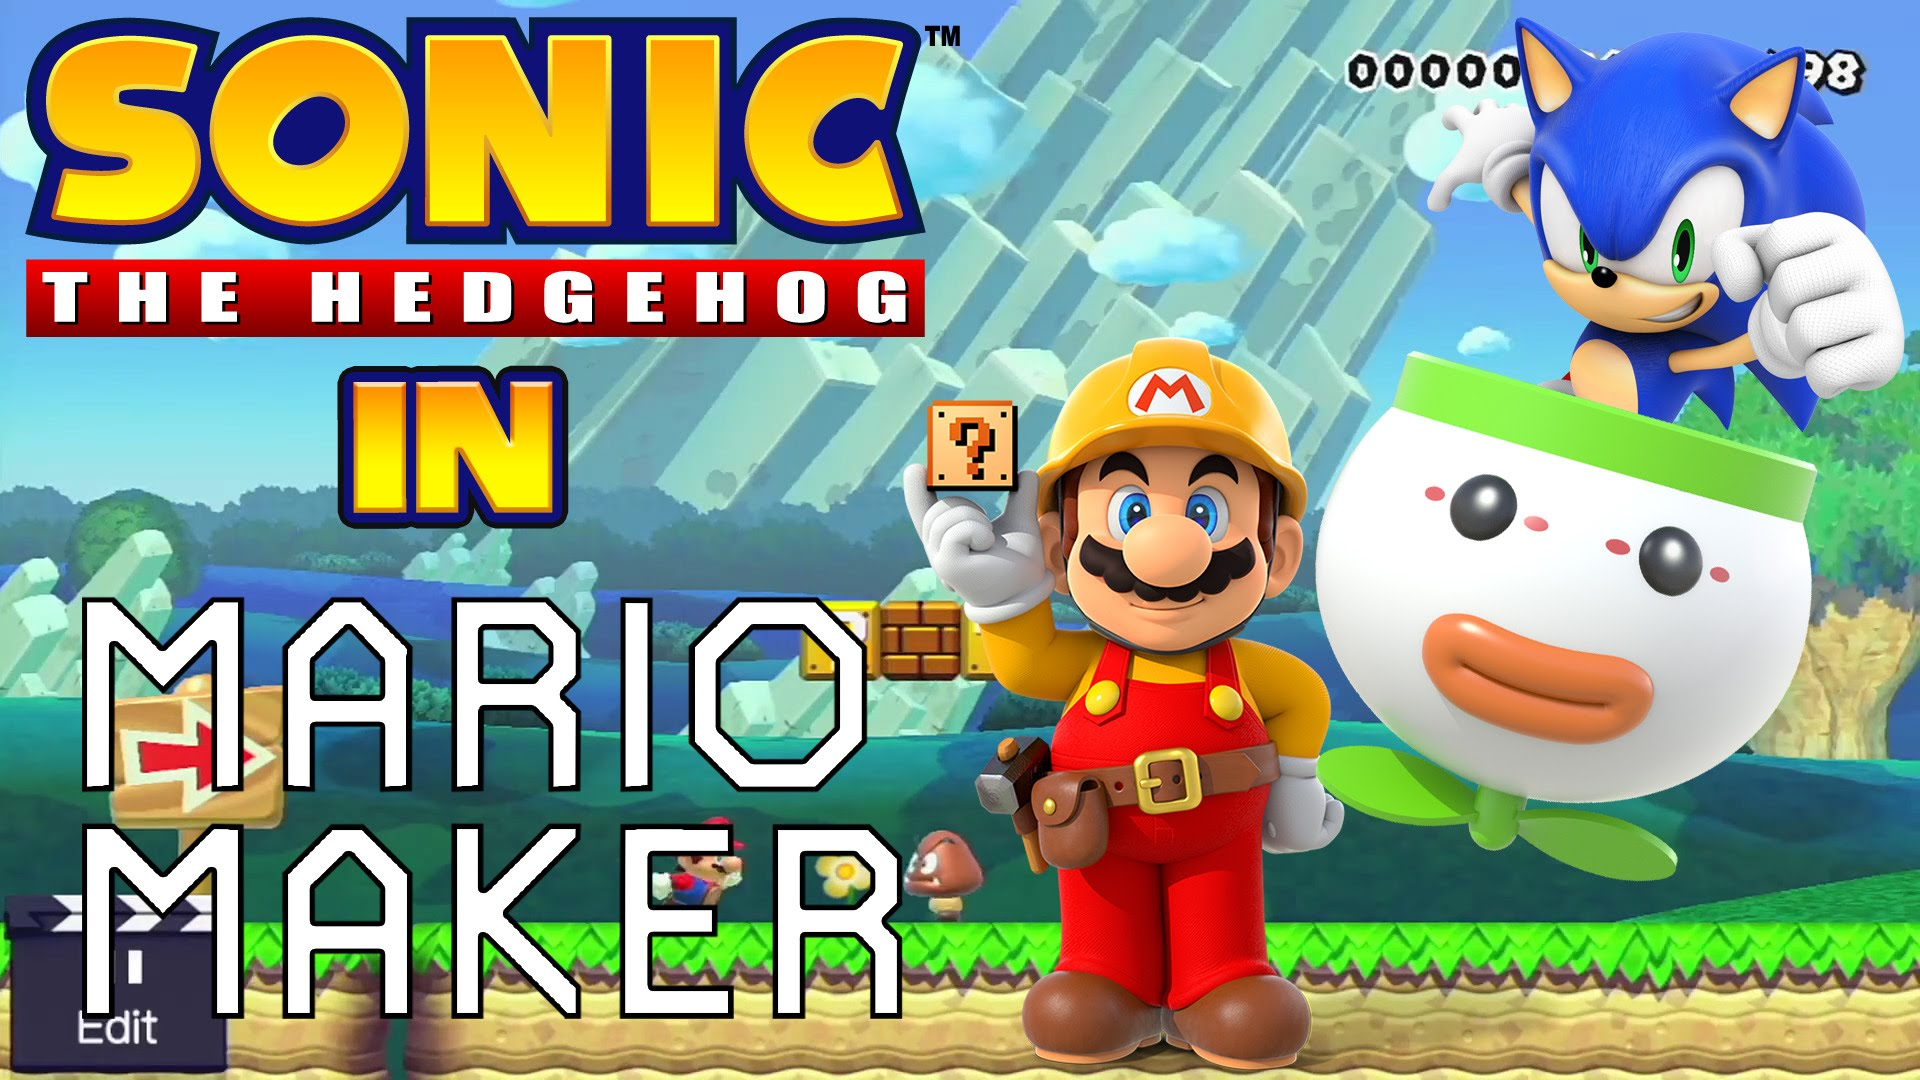 You can play as Sonic in Super Mario Maker | SEGA Nerds